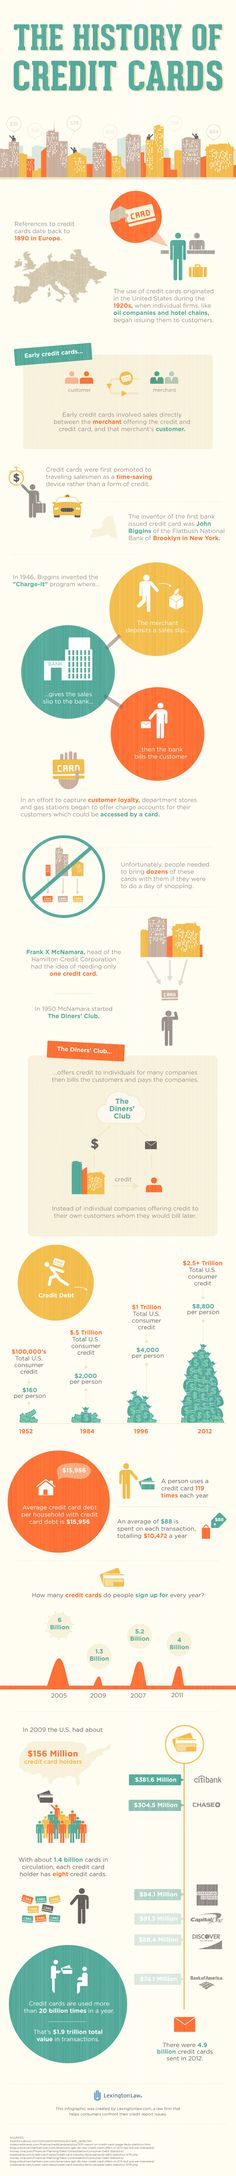 The history of credit cards #infographic